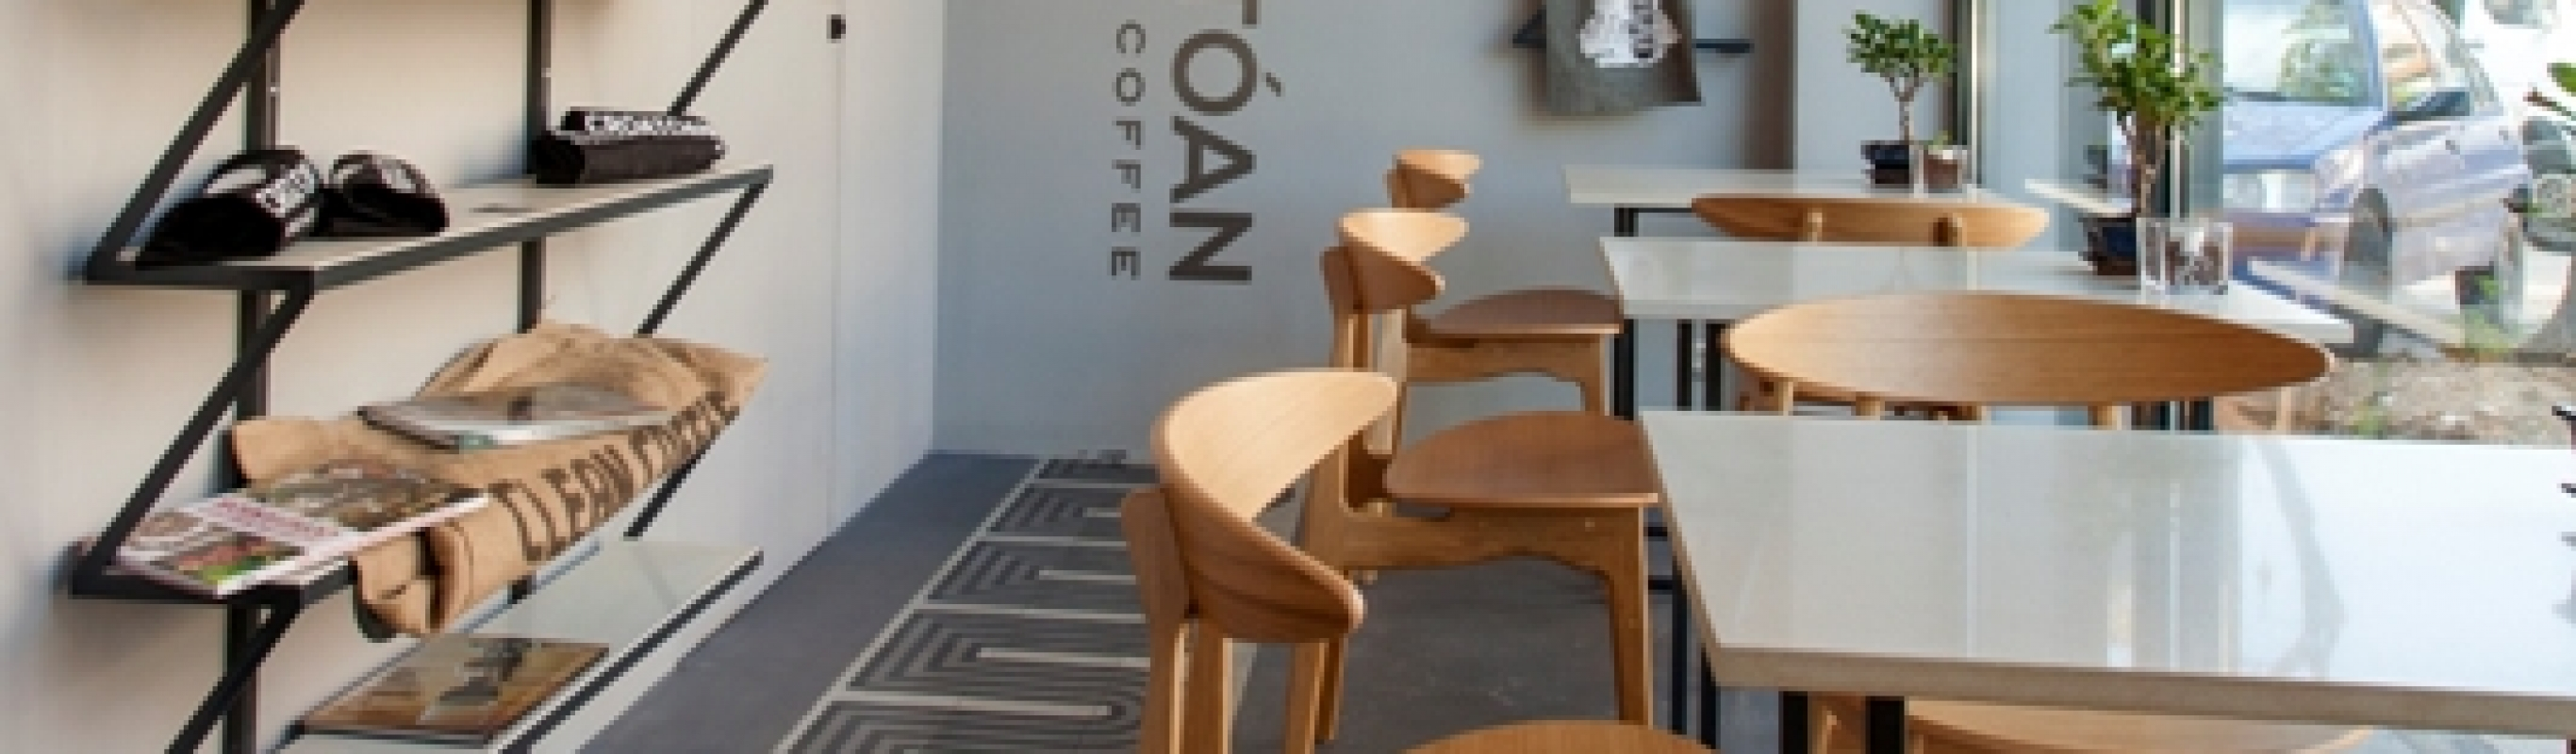 CROATÓAN – SPECIALTY COFFEE SHOP